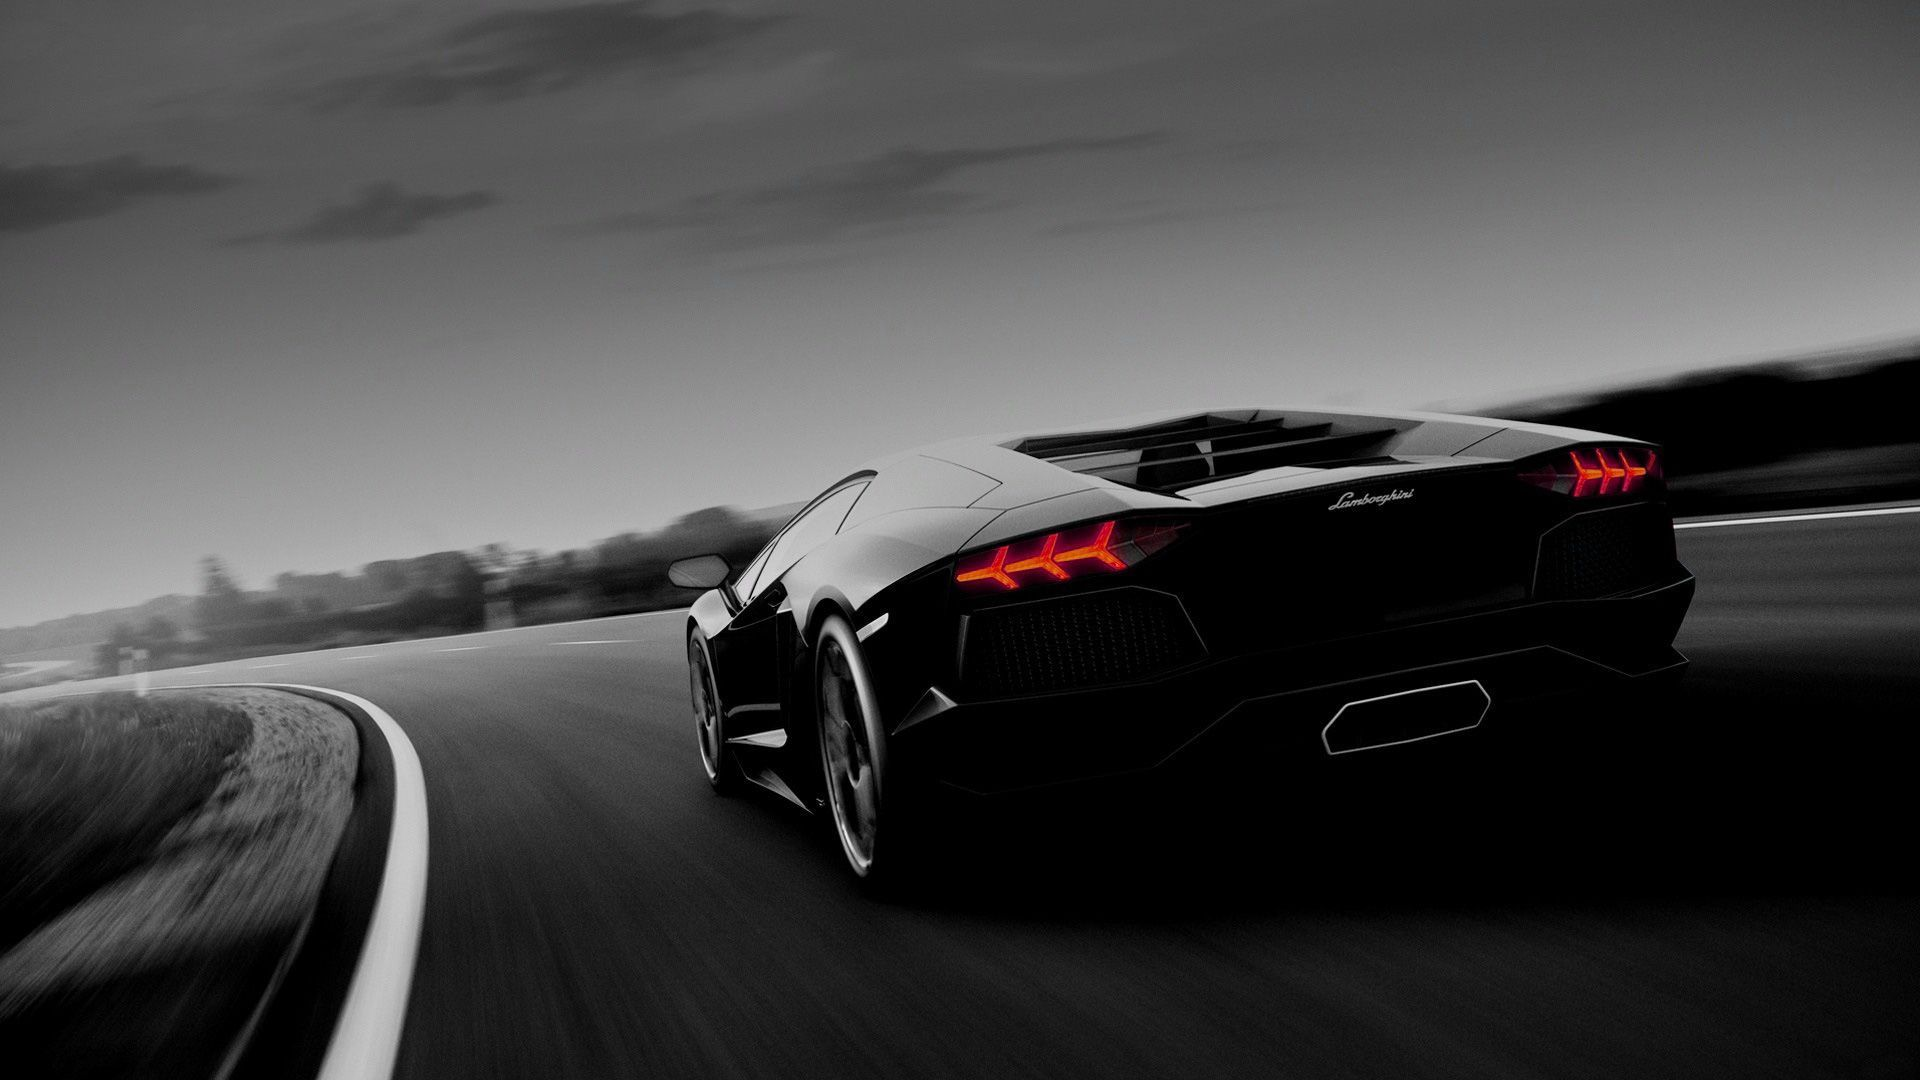 Black And White Lamborghini Wallpaper